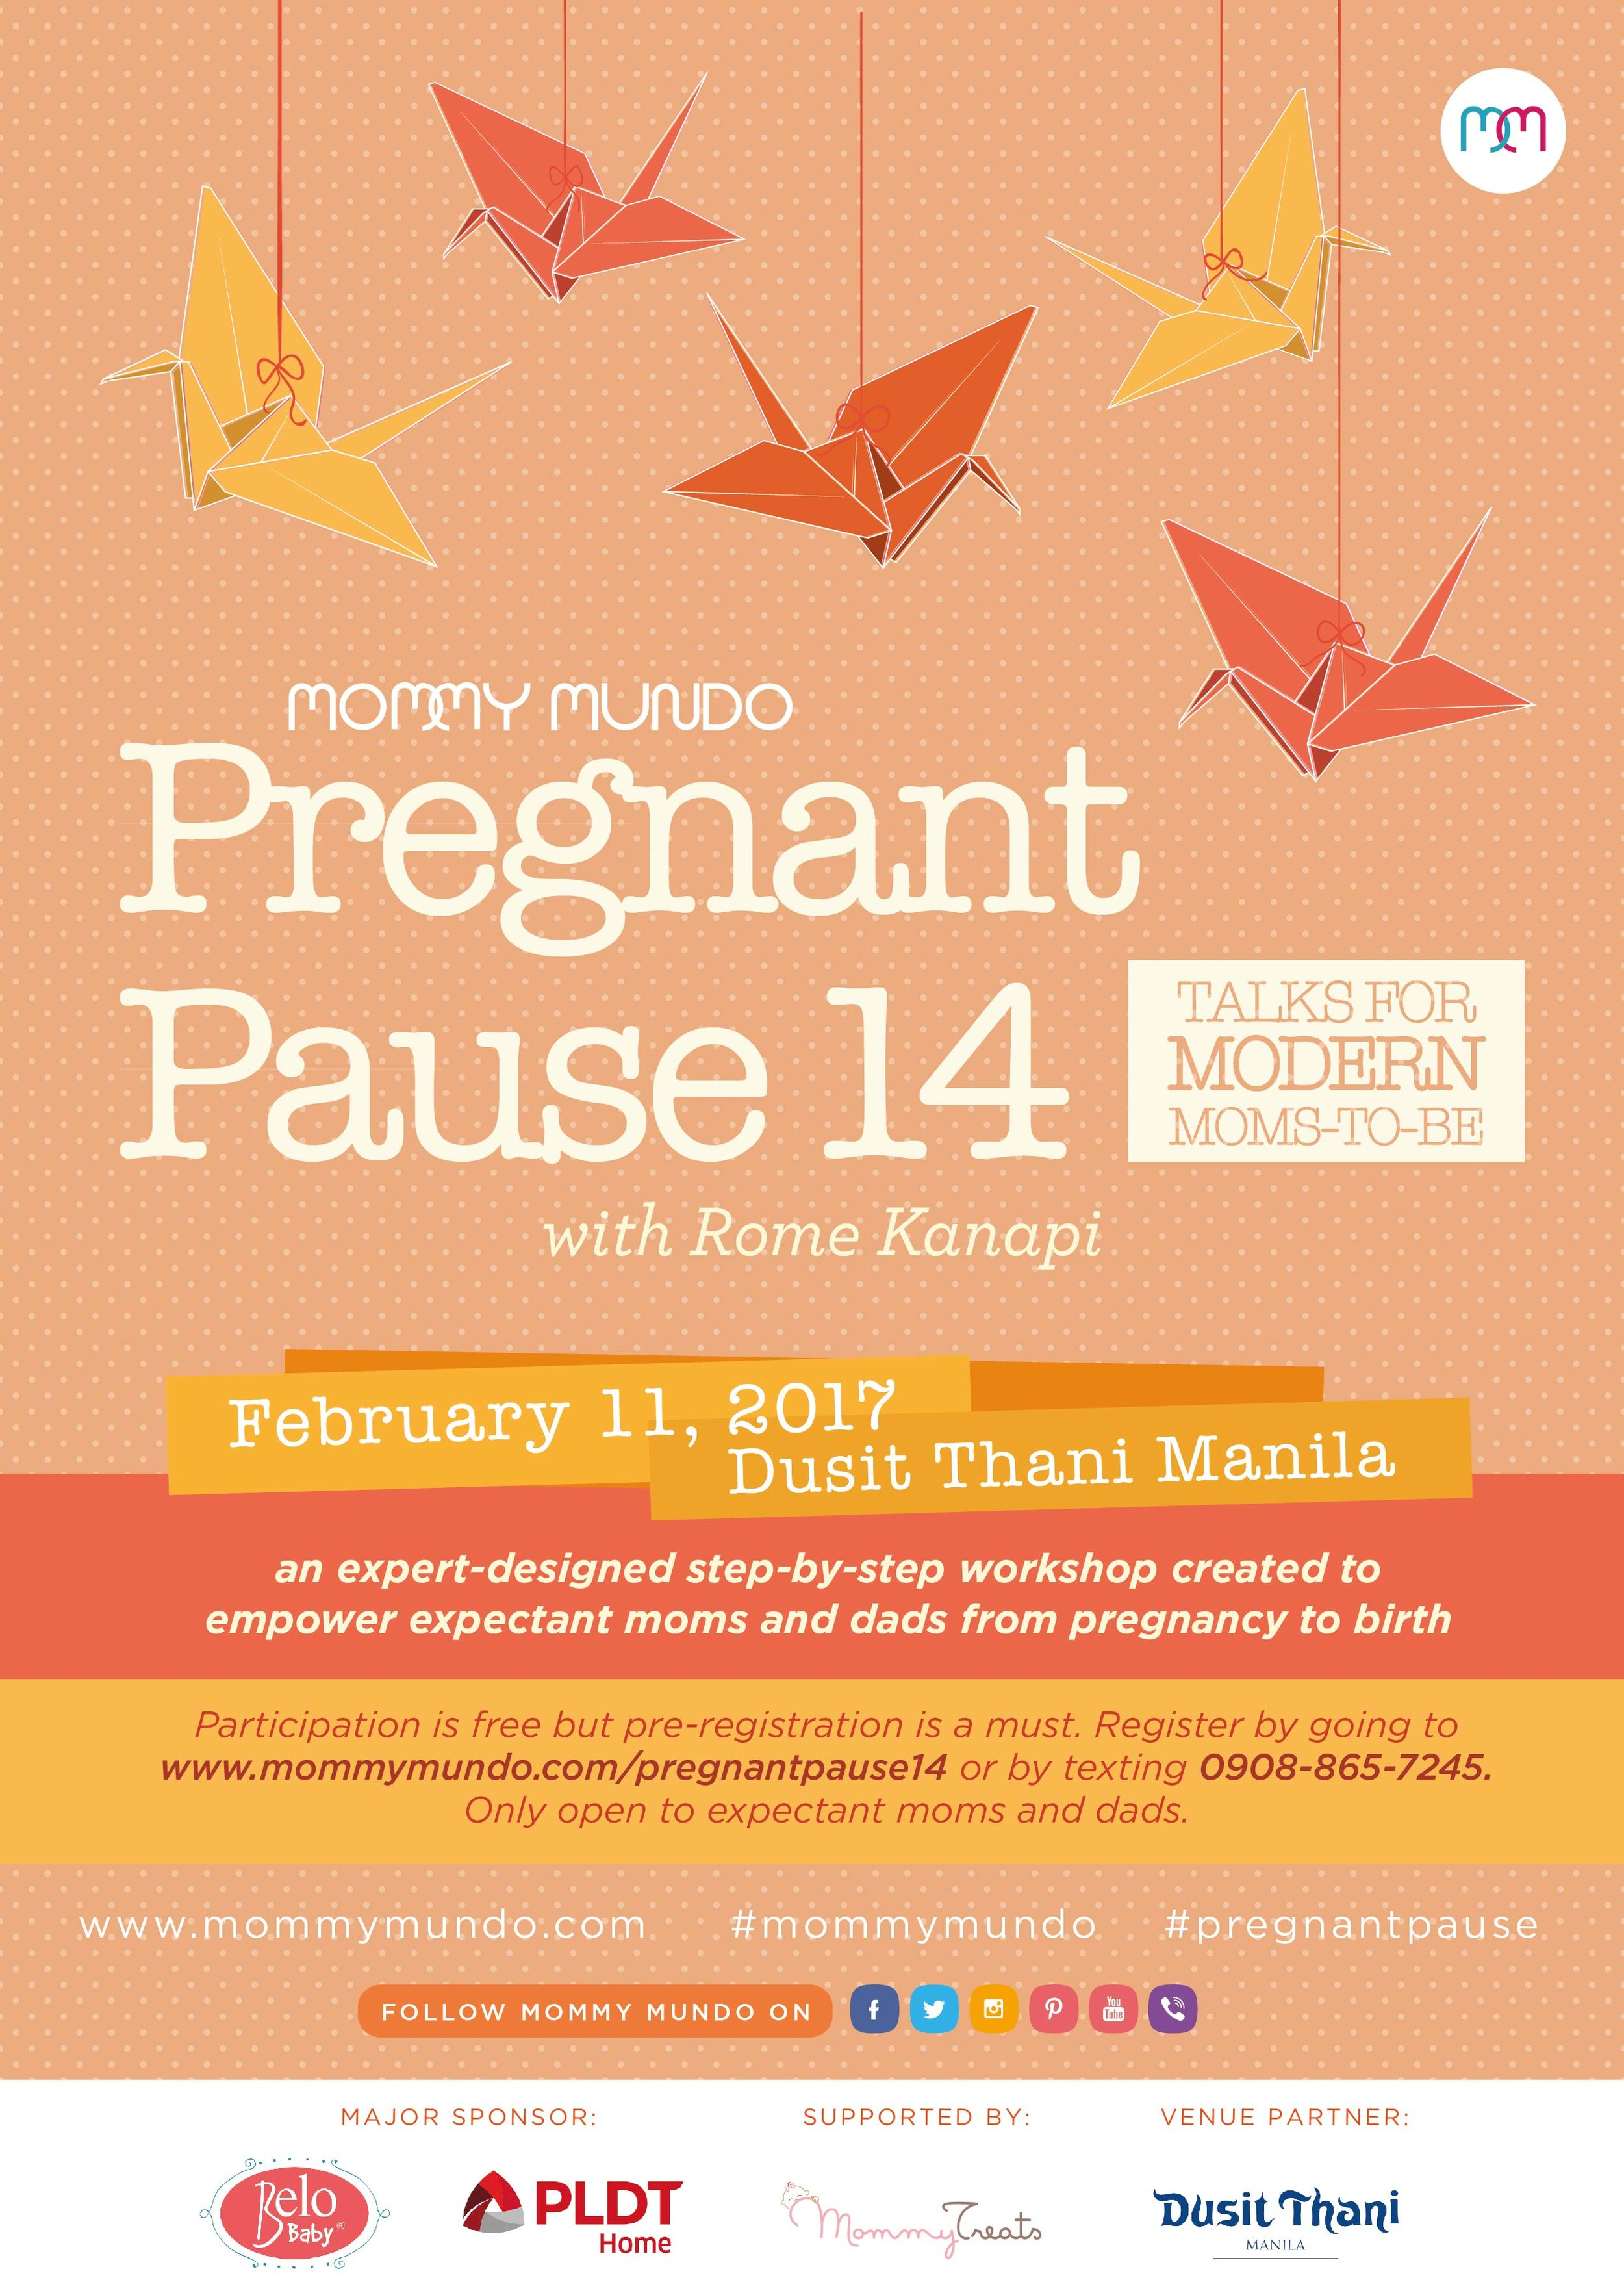 Pregnant Pause 0130_final